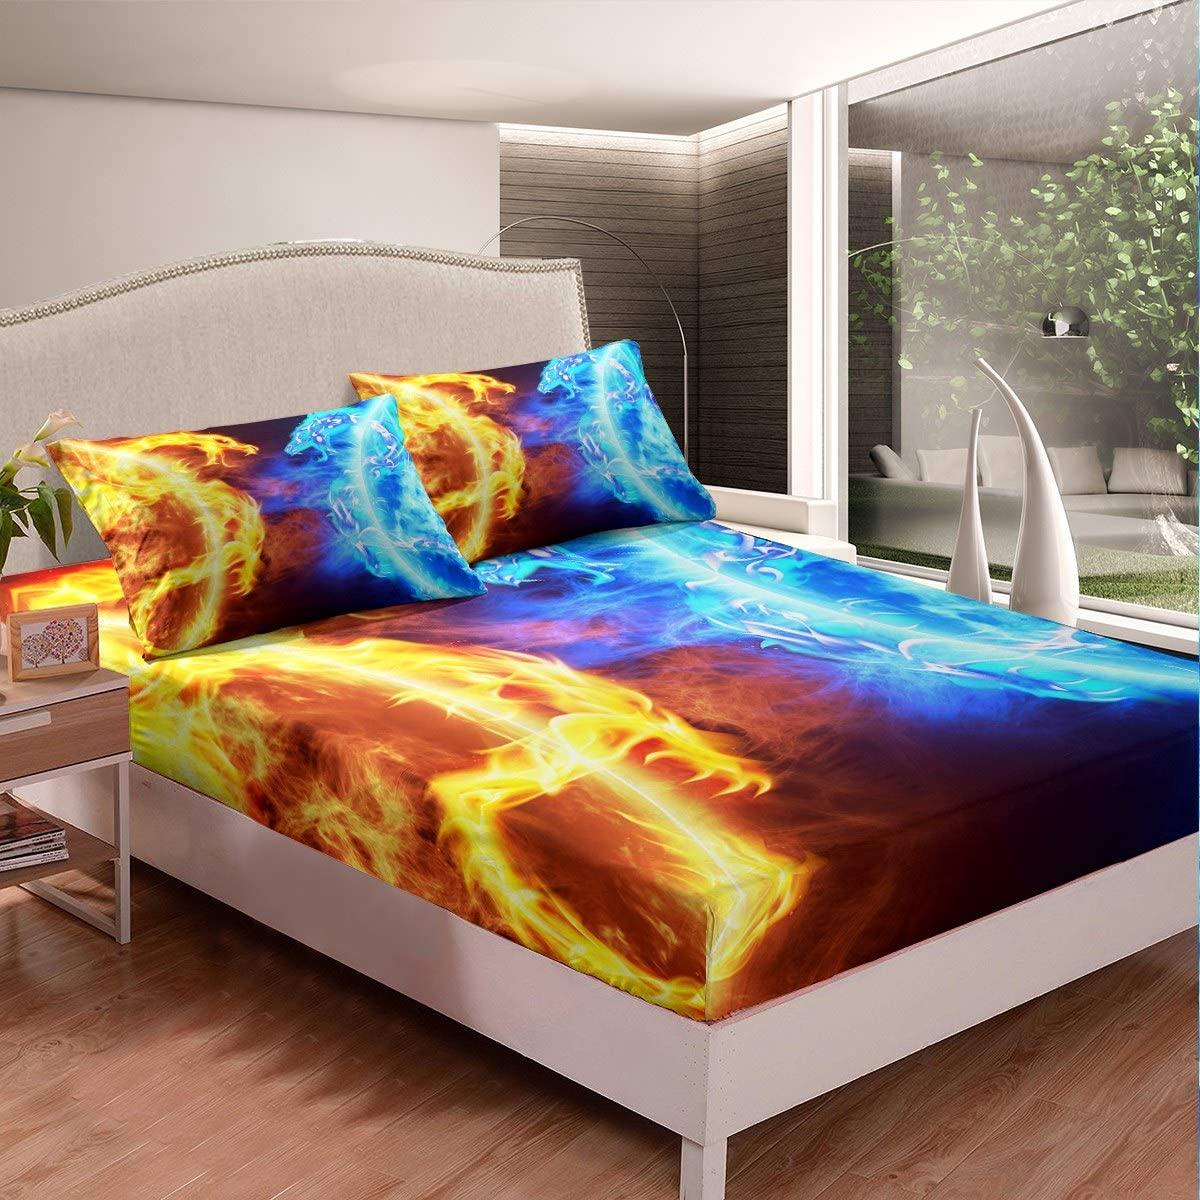 Ice Fire Dragon Fitted Sheet Set for Boys Teens Kids Oriental Beast Printed Bedding Set Eastern Bed Sheet Set Set Auspicious Animals Fairy Tale Theme Room Decor 2Pcs Bed CoverTwin Size